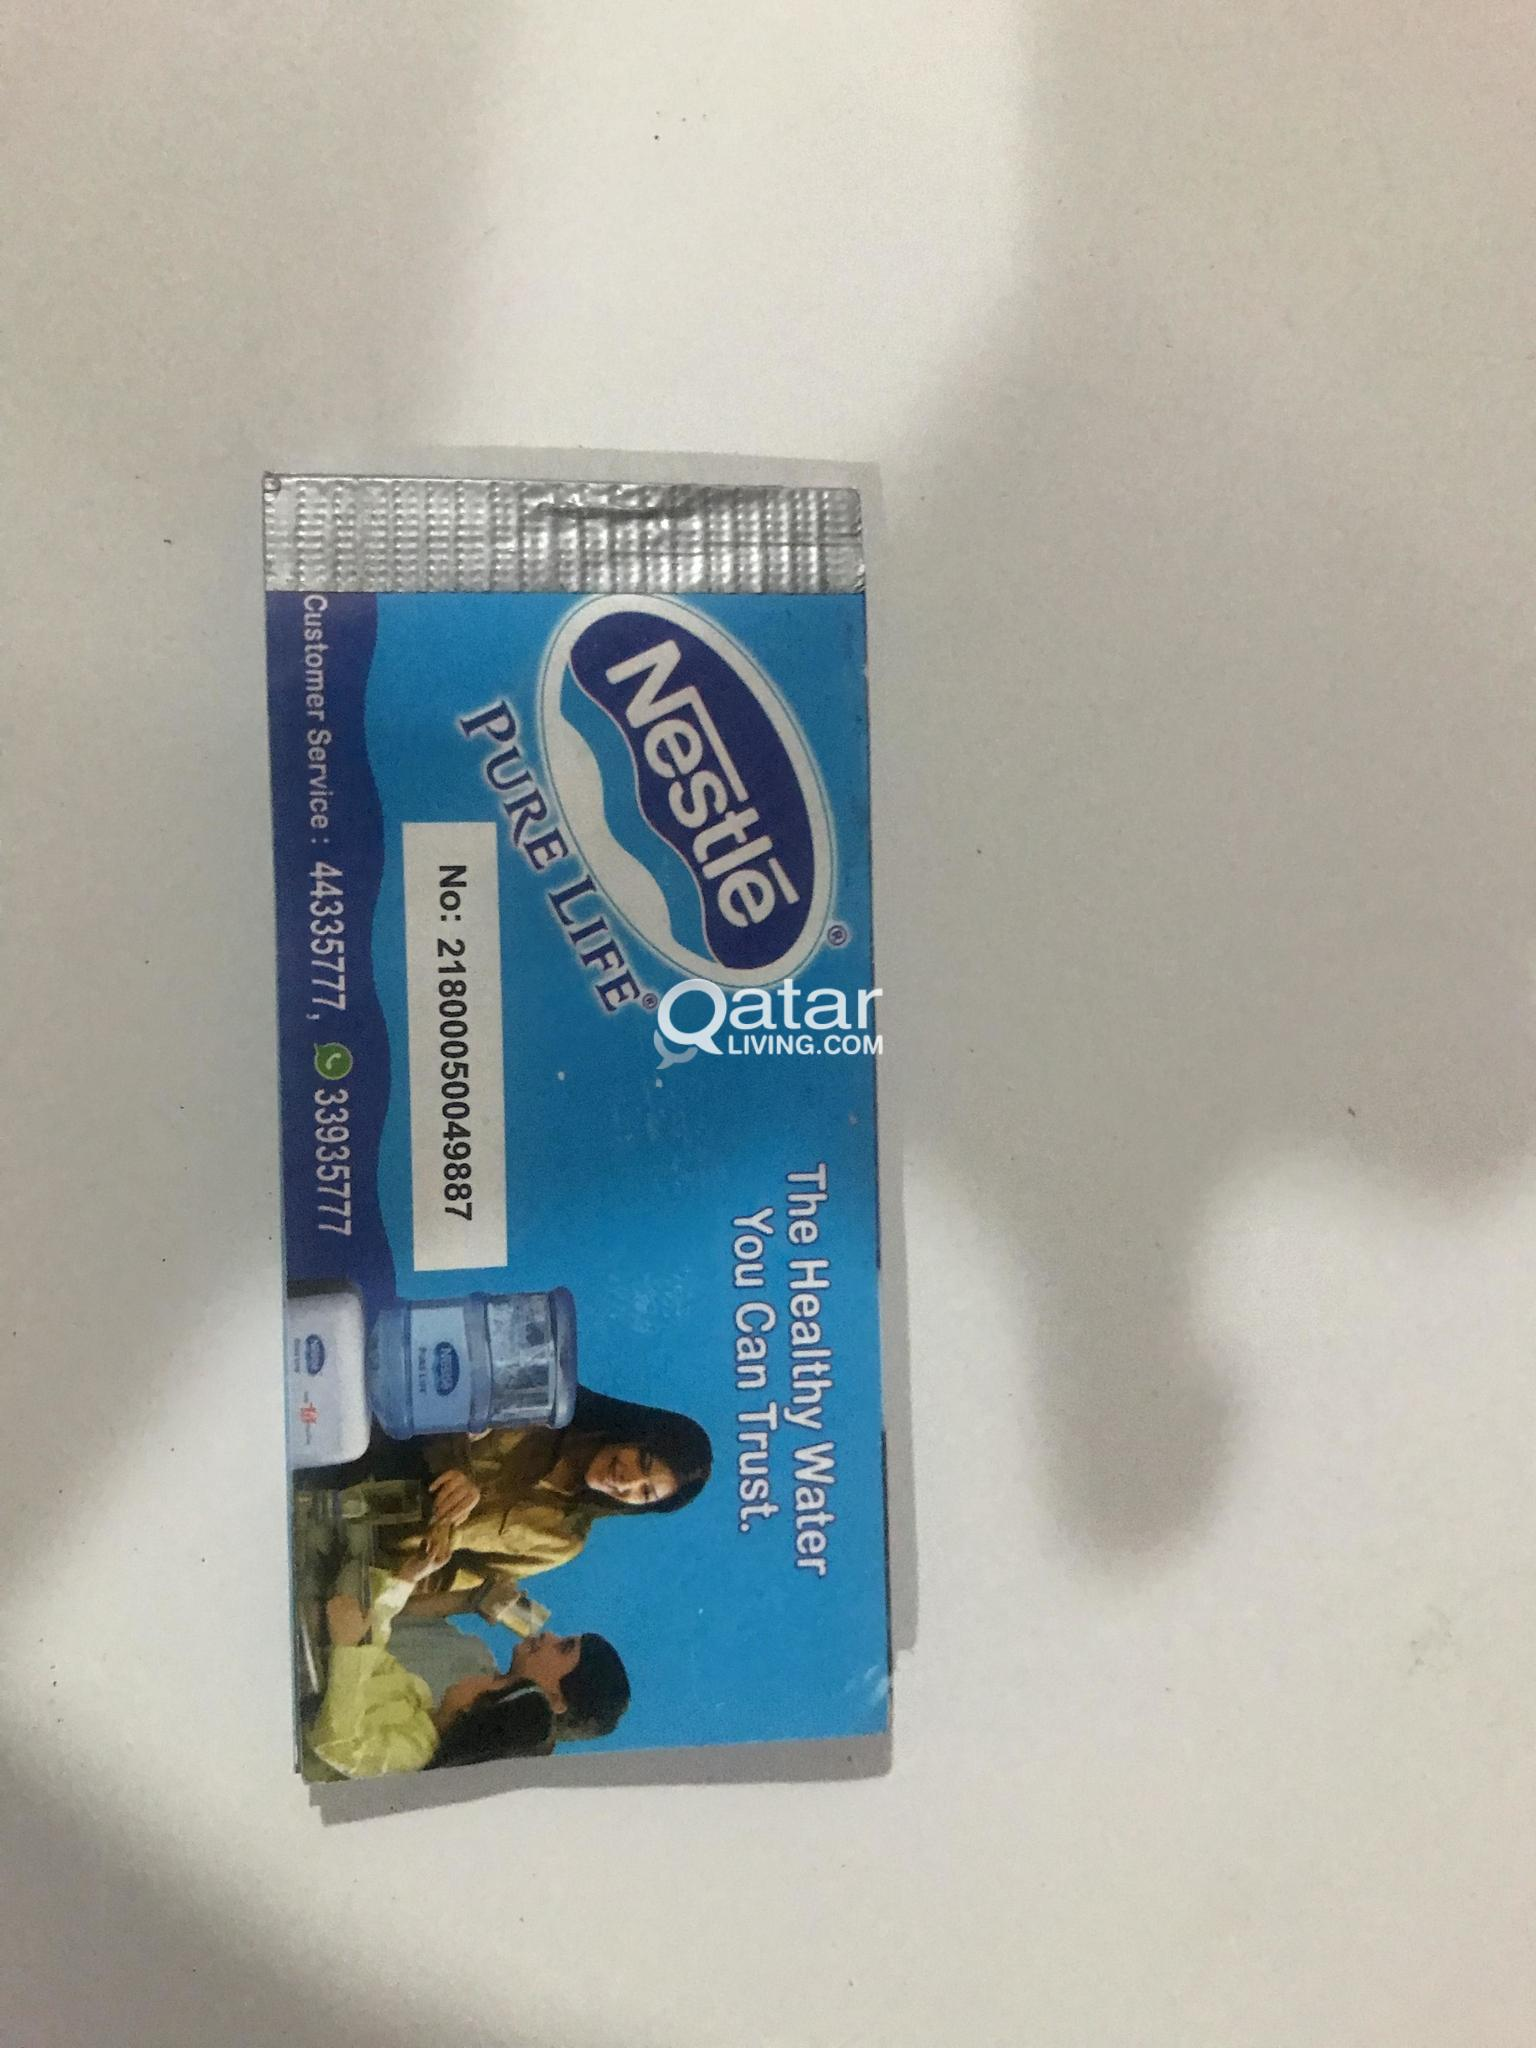 Nestle water coupon | Qatar Living